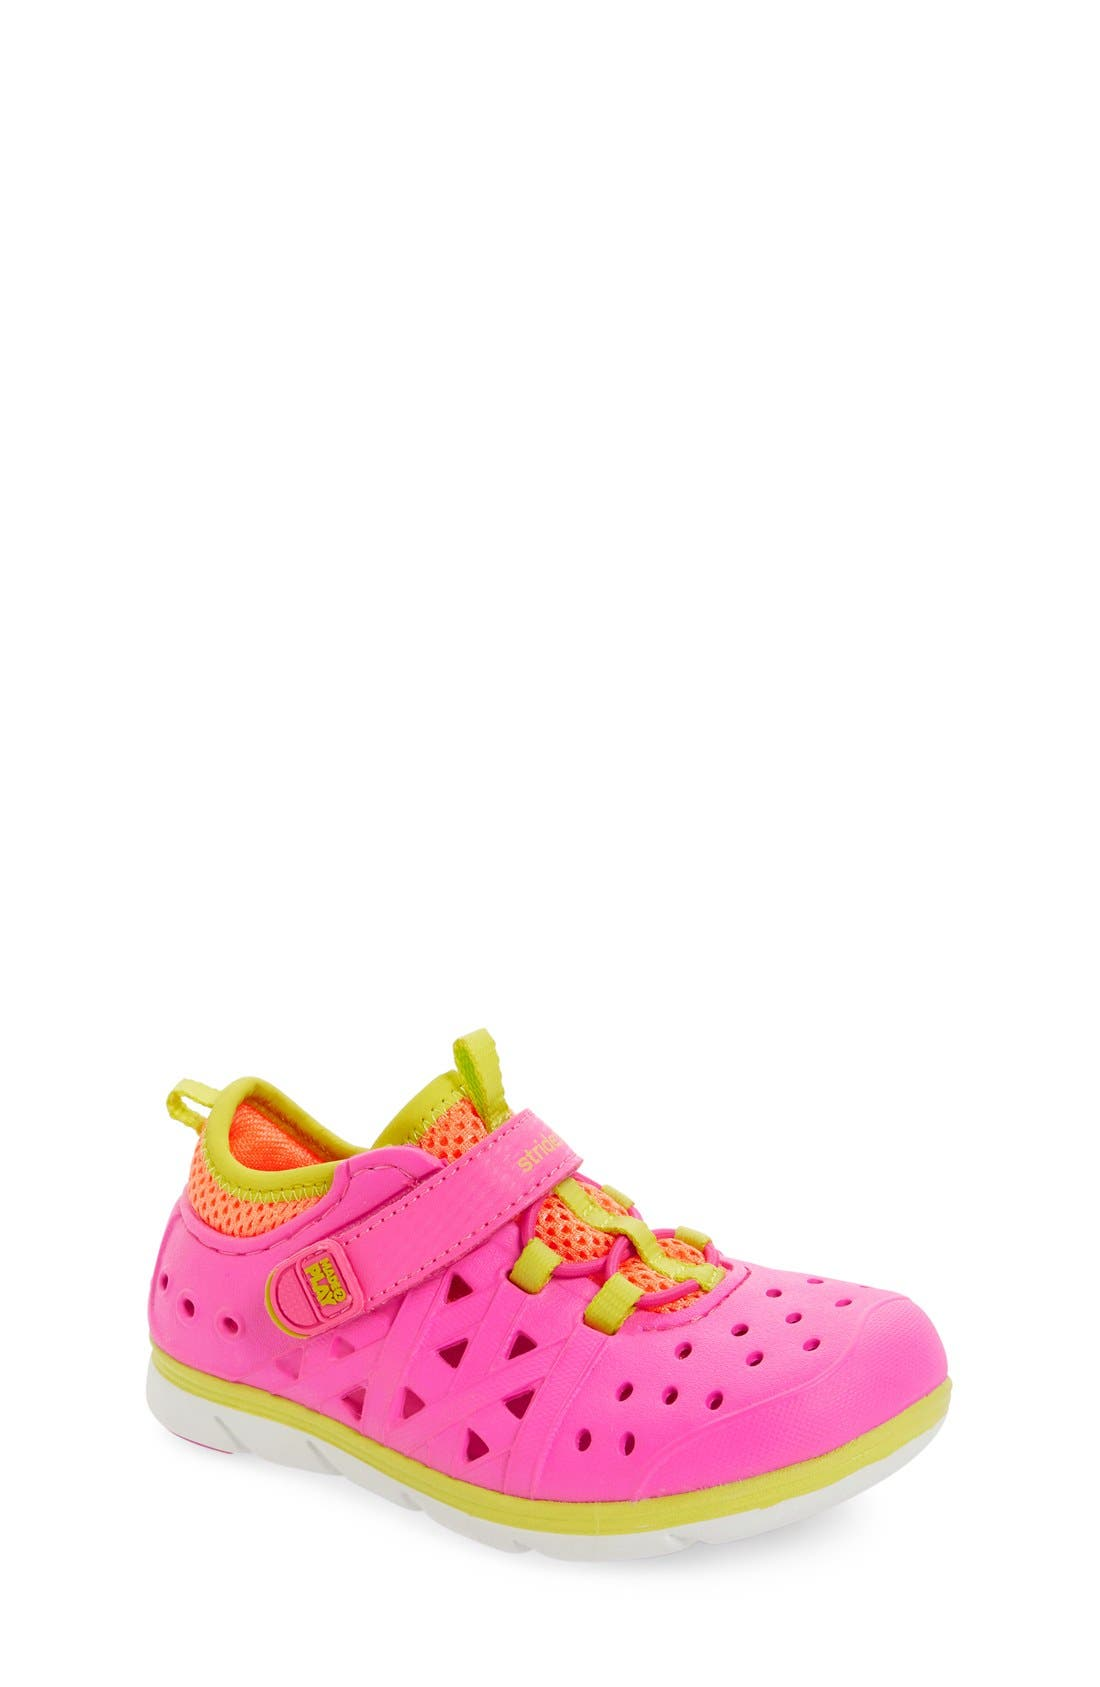 'Made2Play<sup>®</sup> - Phibian' Sneaker,                             Main thumbnail 1, color,                             Pink